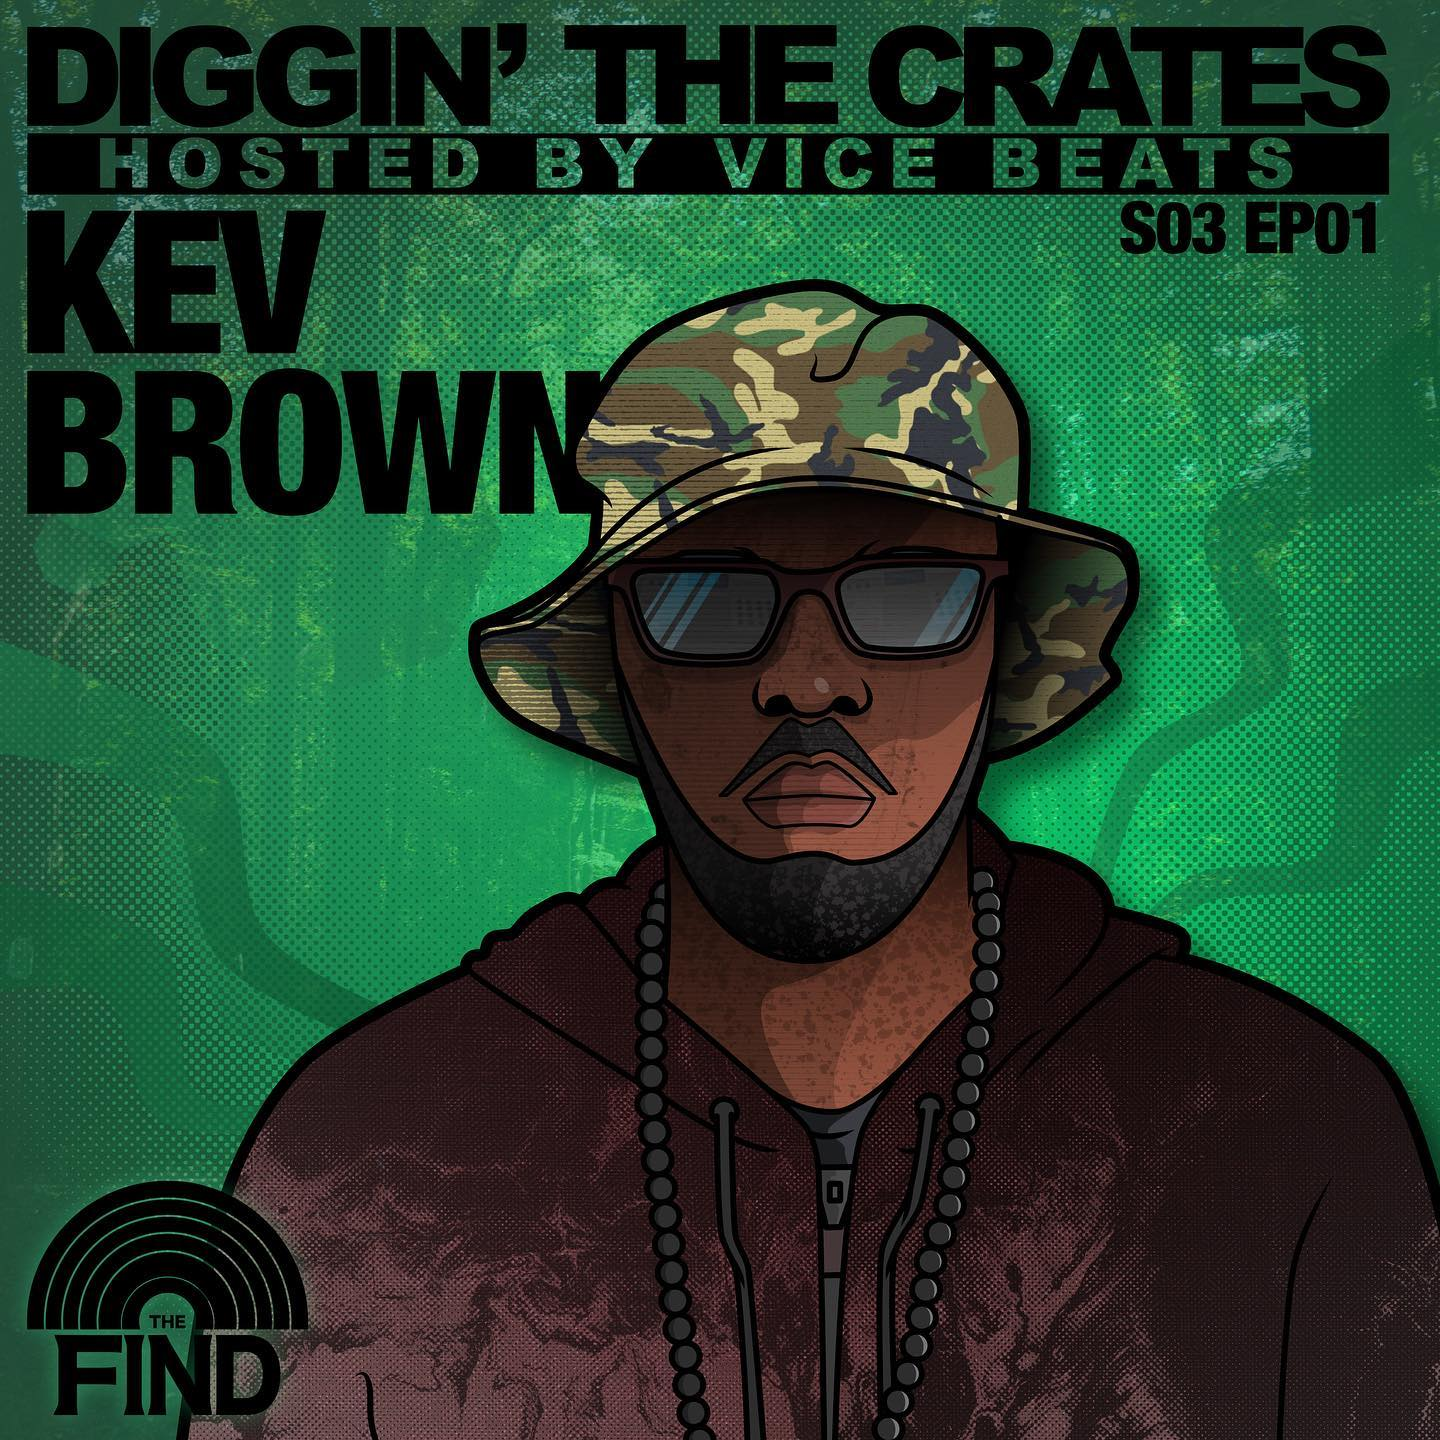 Our Diggin' The Crates Podcast is Back: Kev Brown (Season 3 Kick-off)